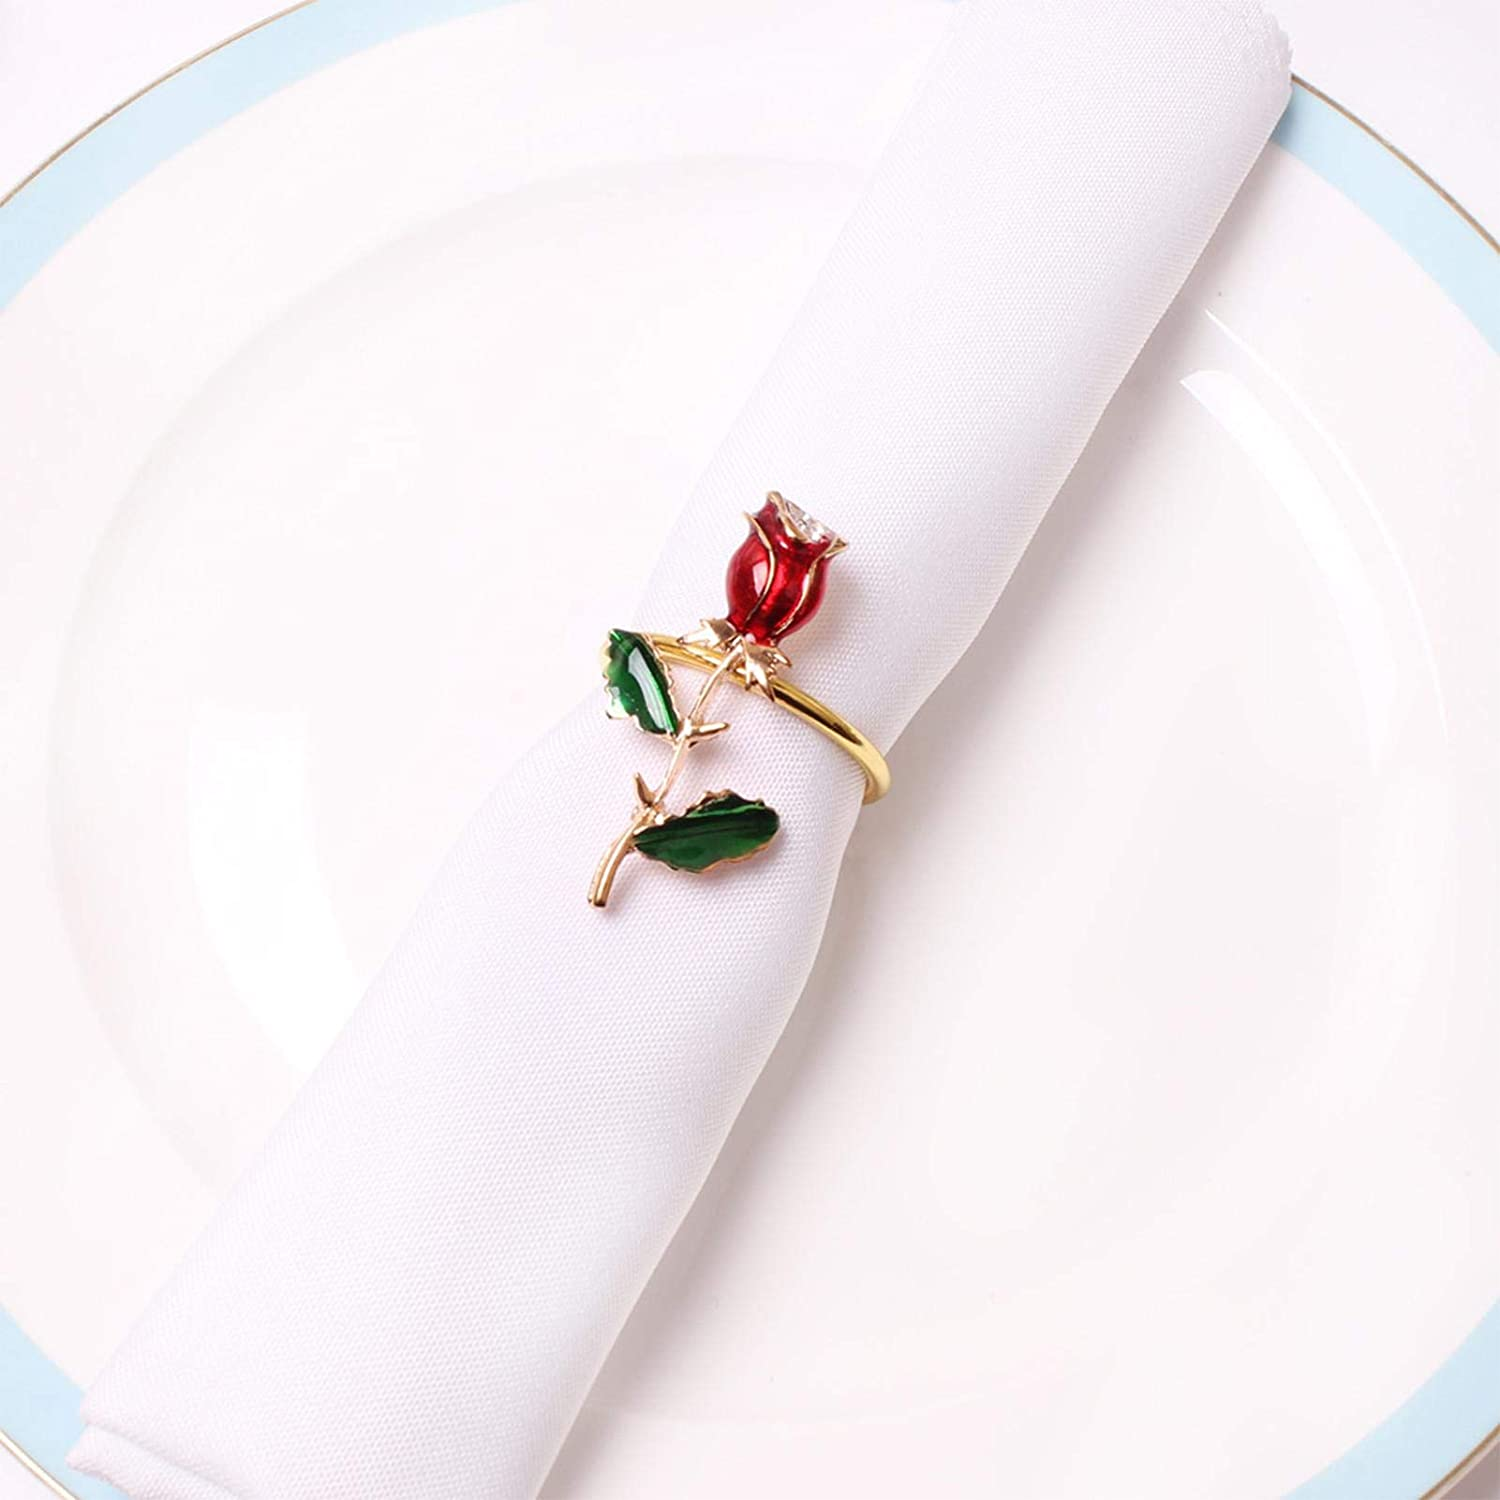 Red Rose Flower Napkin Rings Set of 1//6 Holder for Valentines Day Wedding Party Daily USE Home Valentine/'s Day Dinner Wedding Party Banquet Dinning Propose Marriage Restaurant Hotel Table Decoration